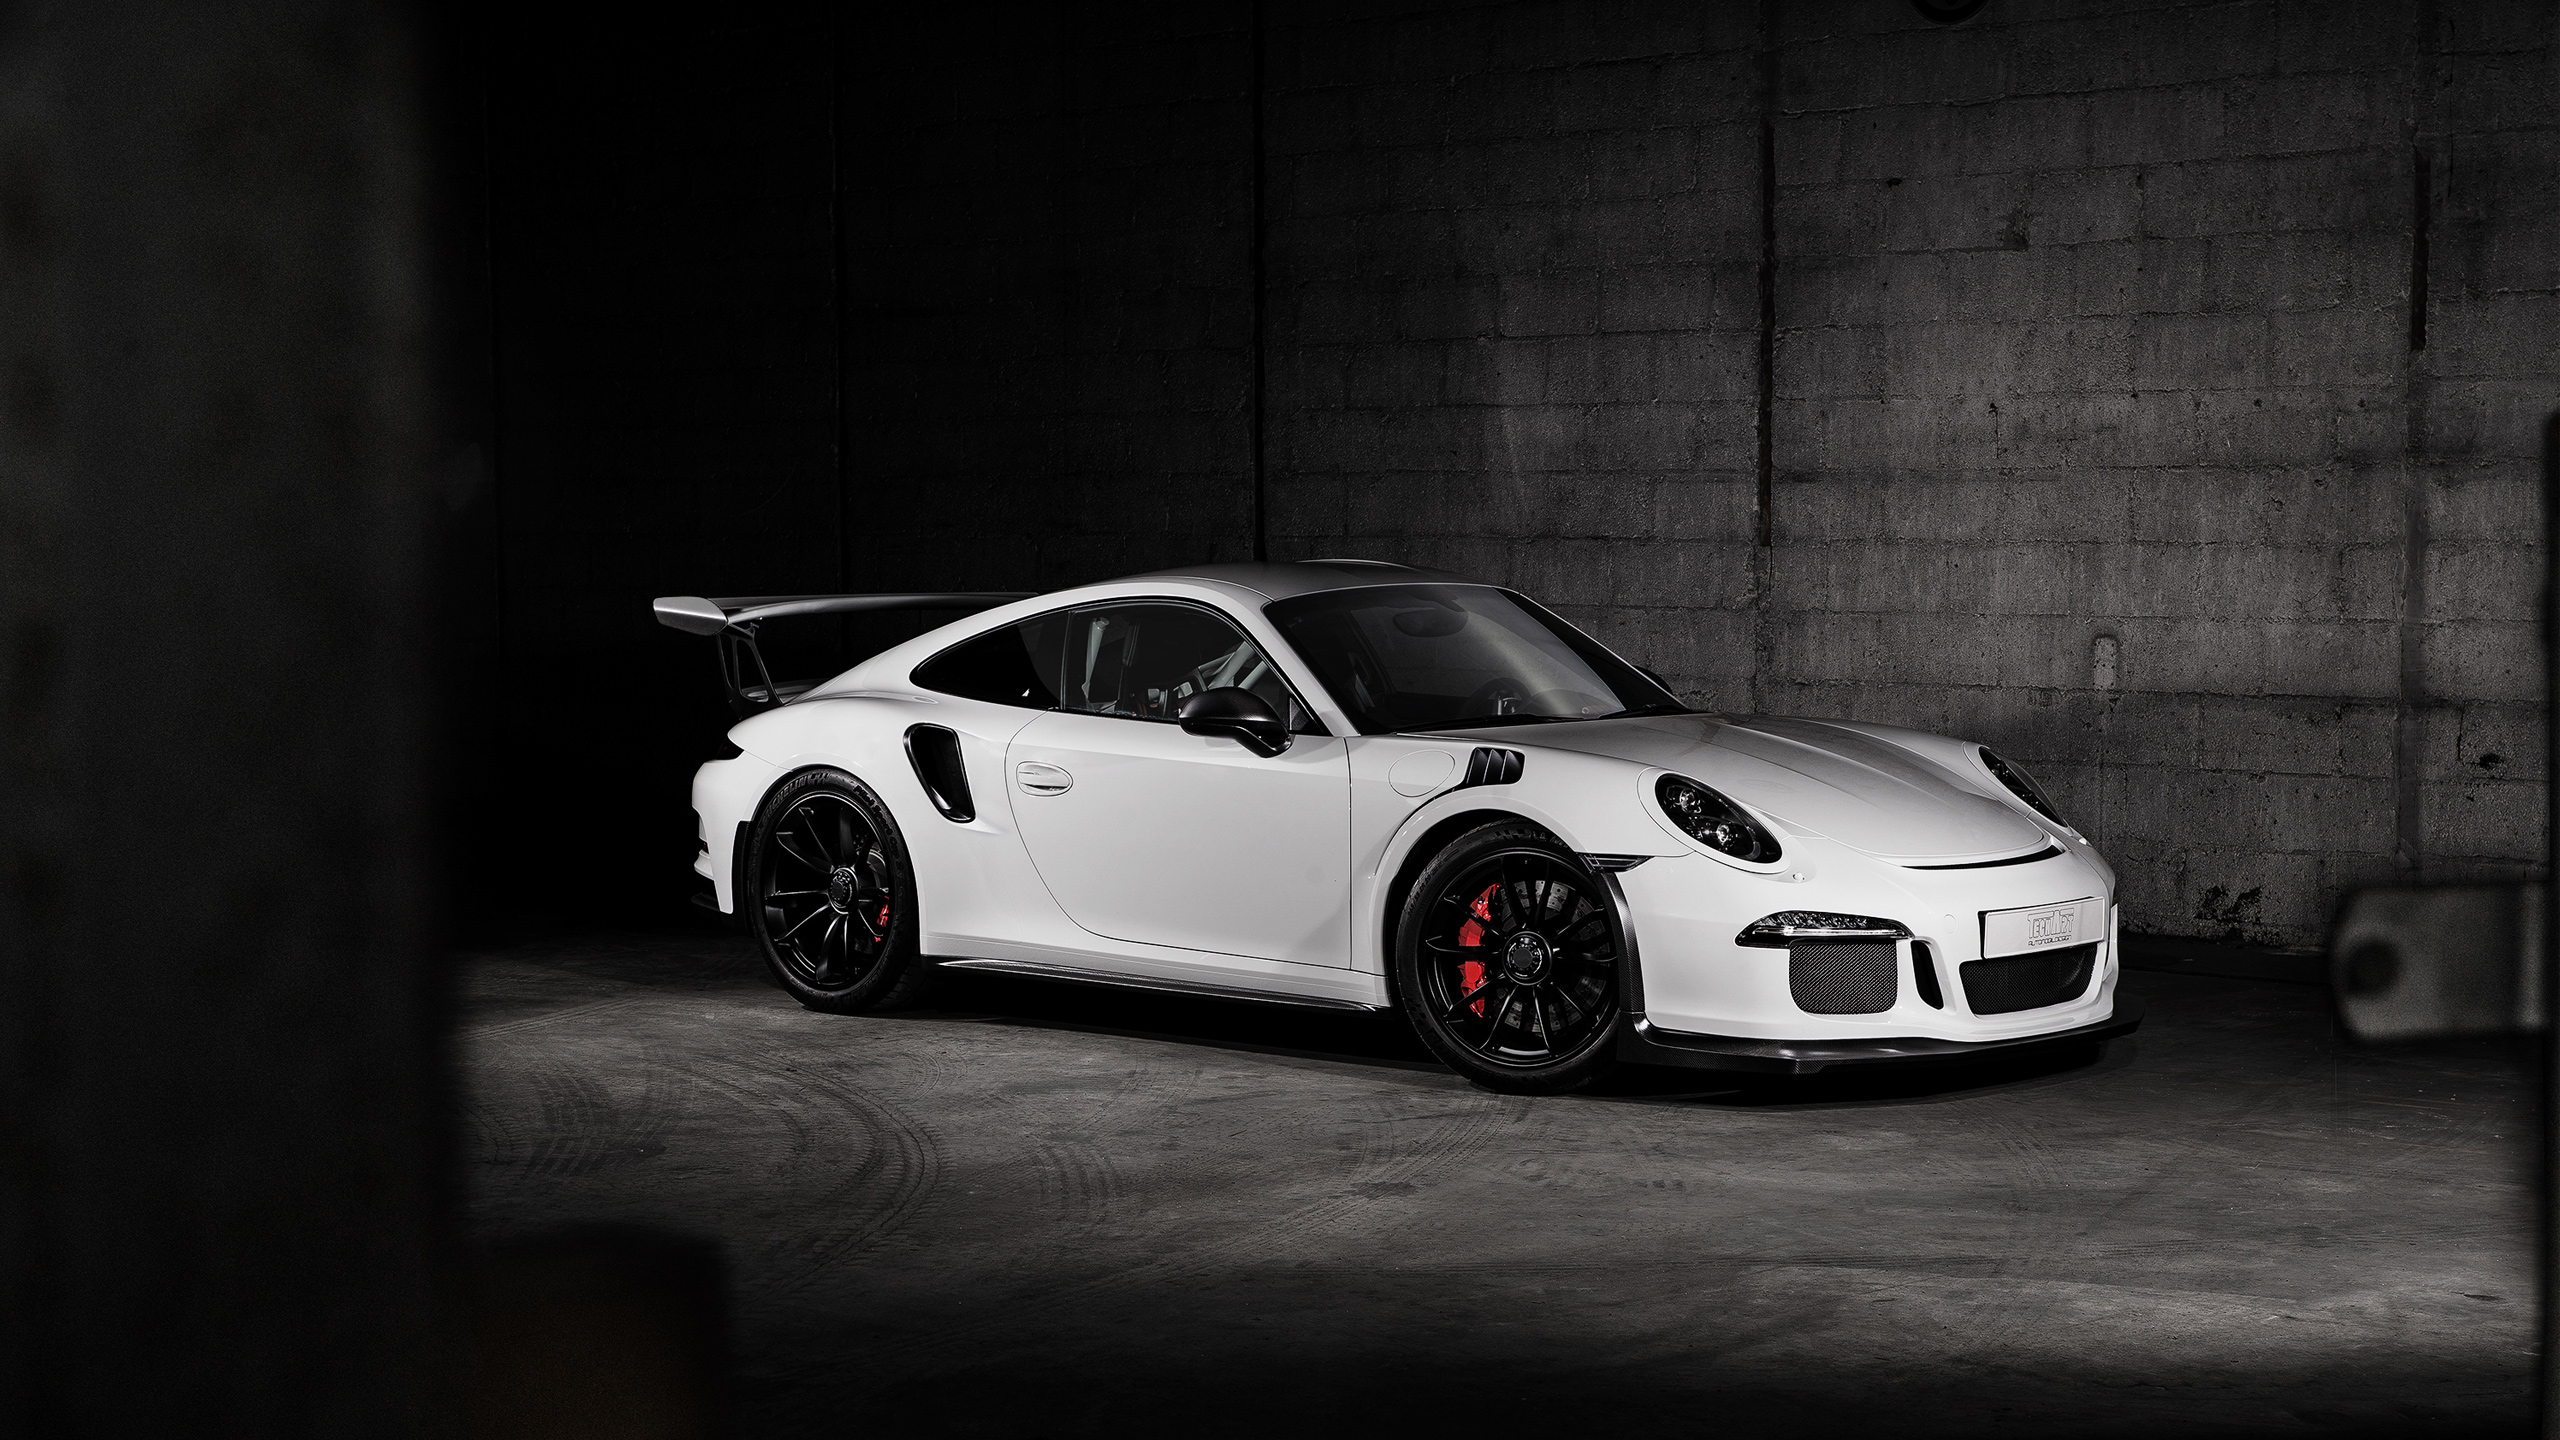 2016 porsche 911 gt3 rs carbon techart wallpaper hd car. Black Bedroom Furniture Sets. Home Design Ideas